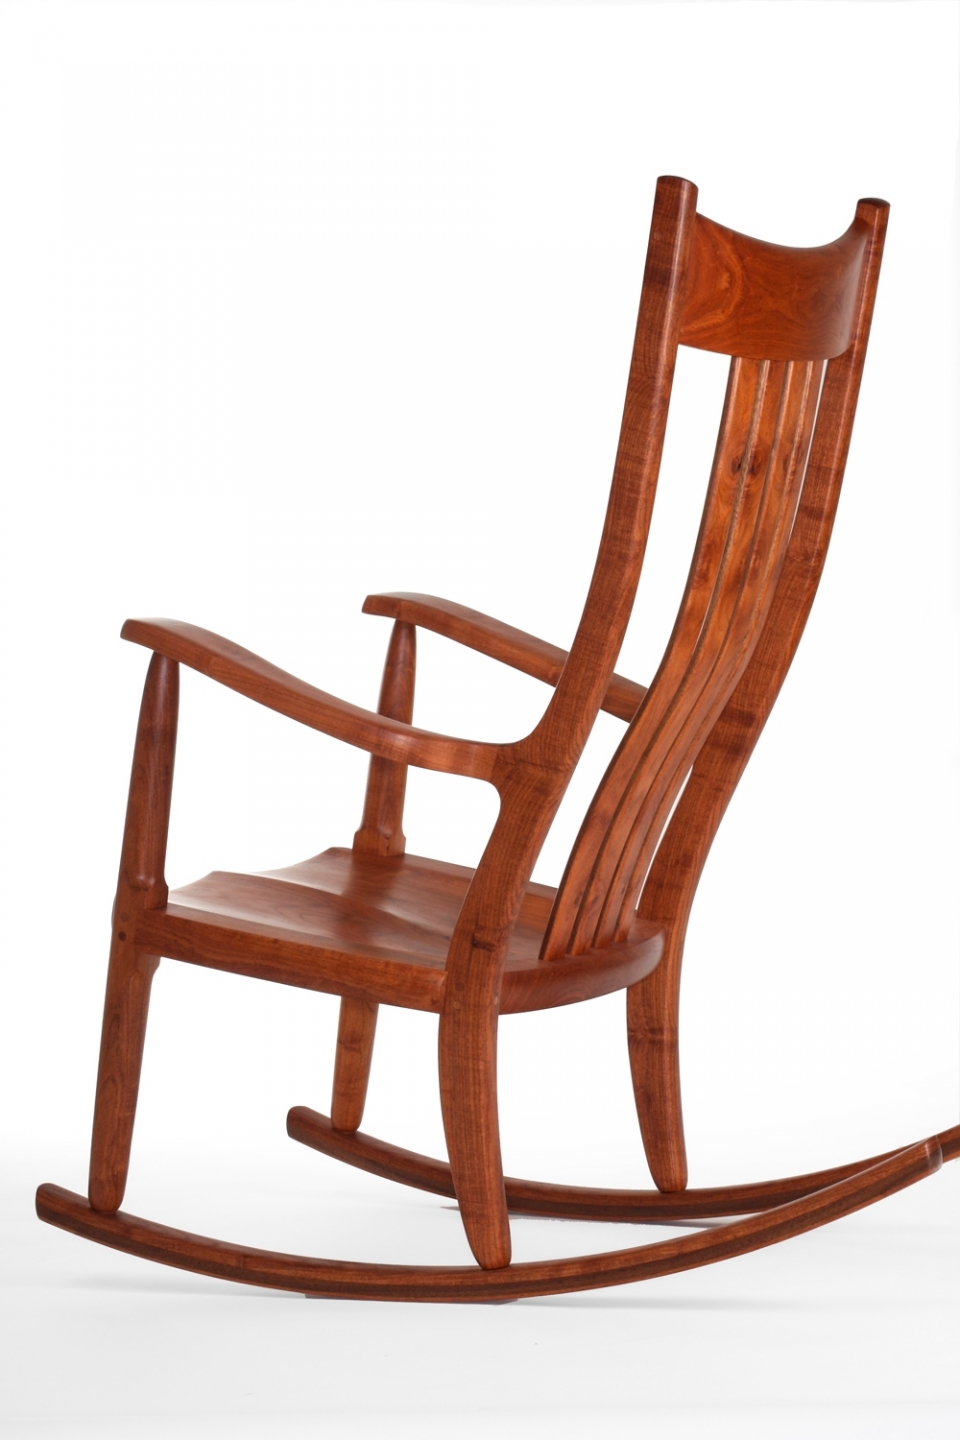 Cheap Rocking Chairs Directory Of Handmade Rocking Chair Makers Gary Weeks And Company